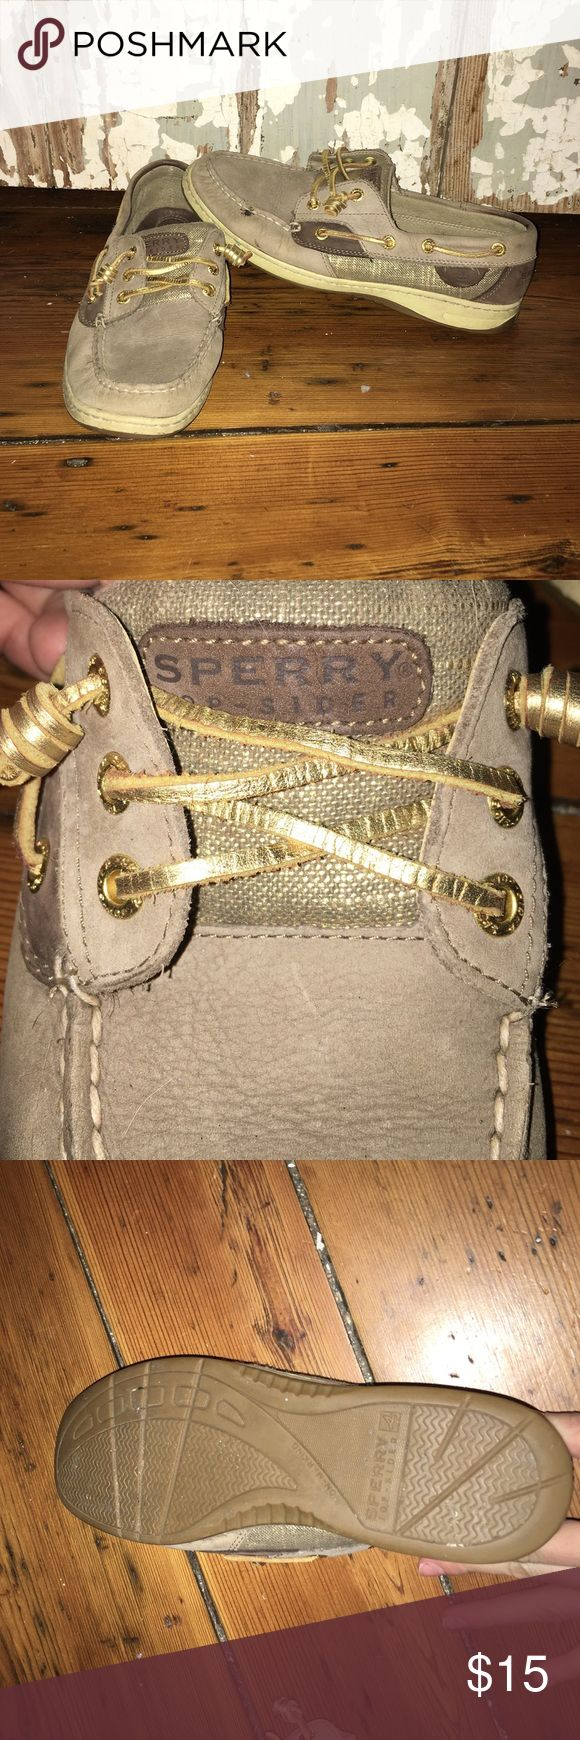 Sperry Slip On Shoe Brown sperry shoe with gold lacing, gold burlap detail, very little wear, one small stain, very comfortable Sperry Top-Sider Shoes Flats & Loafers